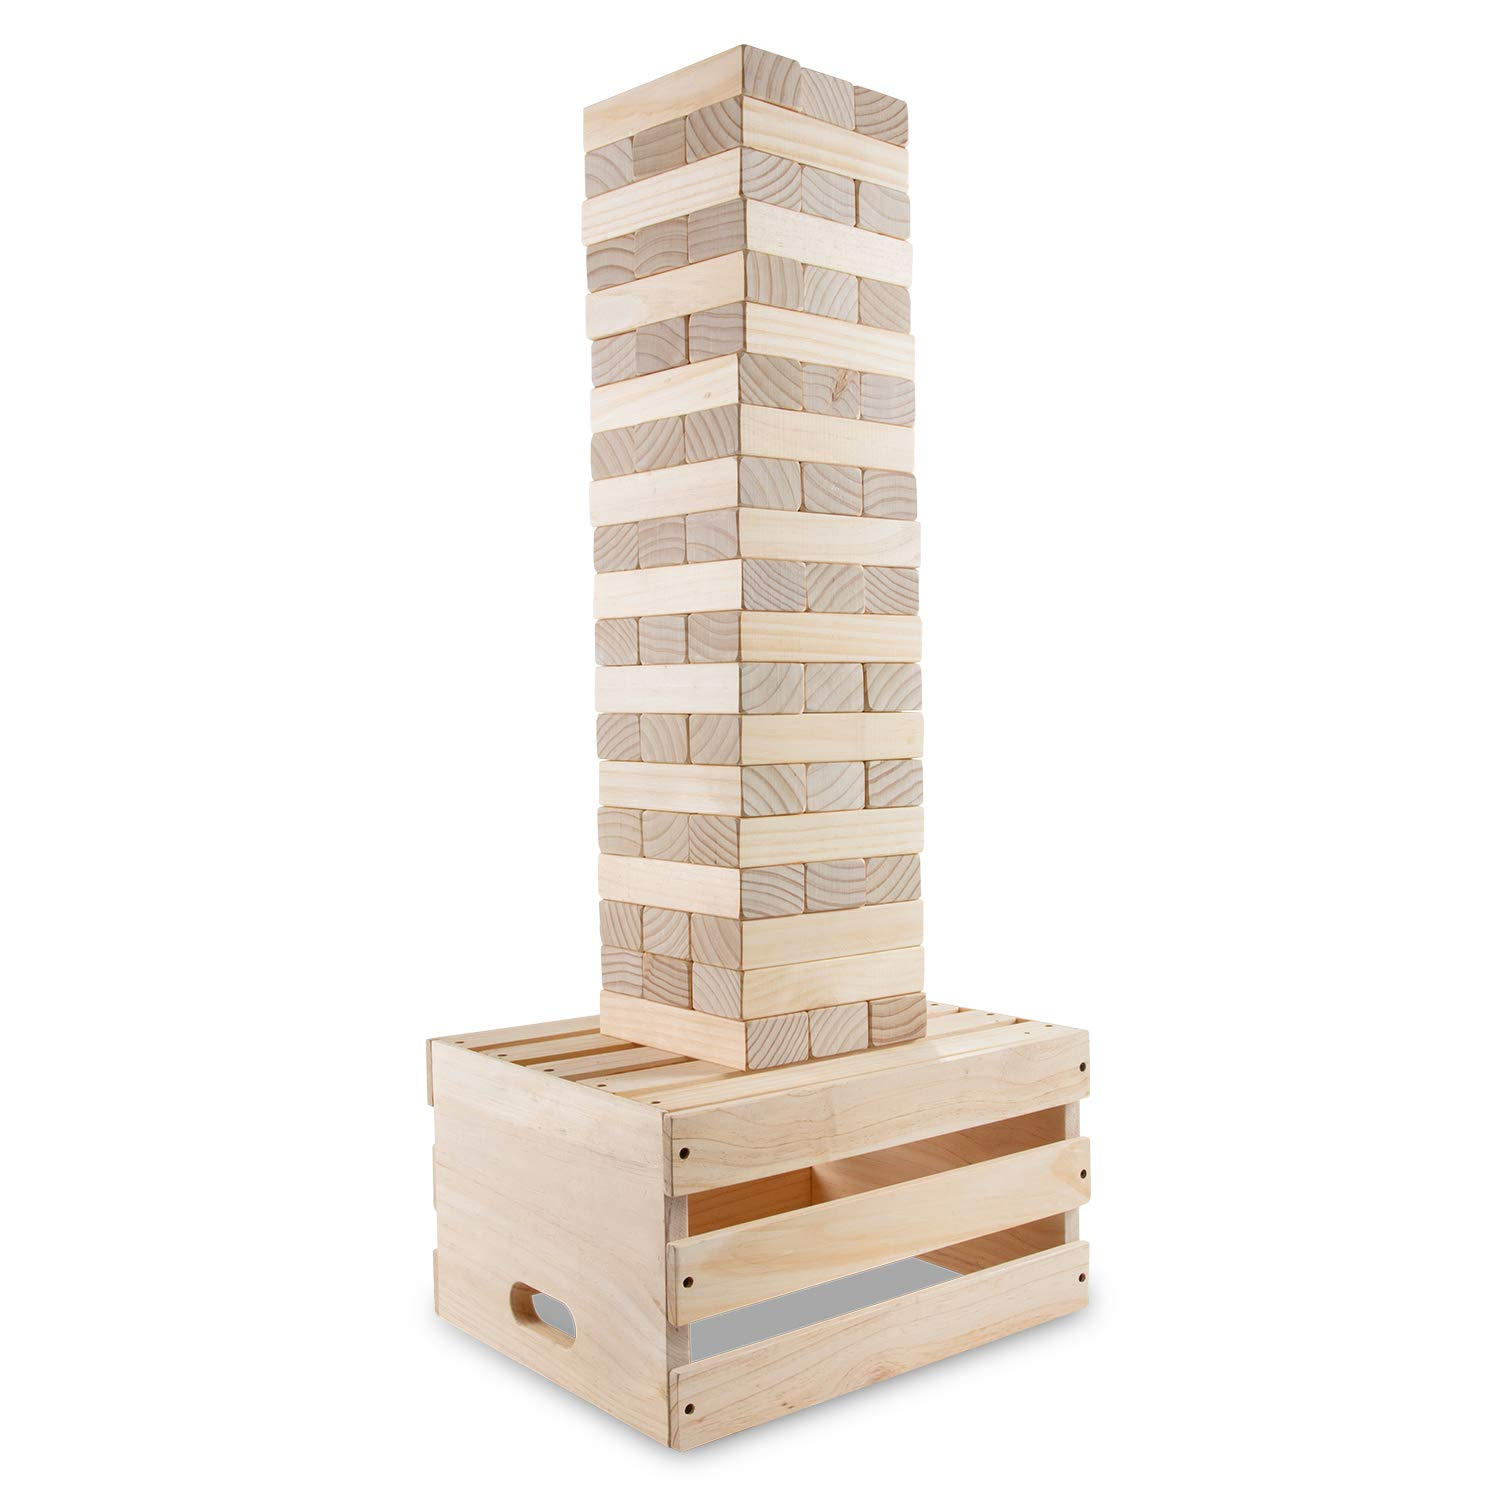 Sunny & Fun Giant Toppling Tower - 60 Jumbo Wooden Blocks Stacks to 5+ Feet - Oversized Indoor & Outdoor Stacking Game for Adults & Kids w/ 2-in-1 Storage & Table Crate - for Party Yard Lawn Backyard